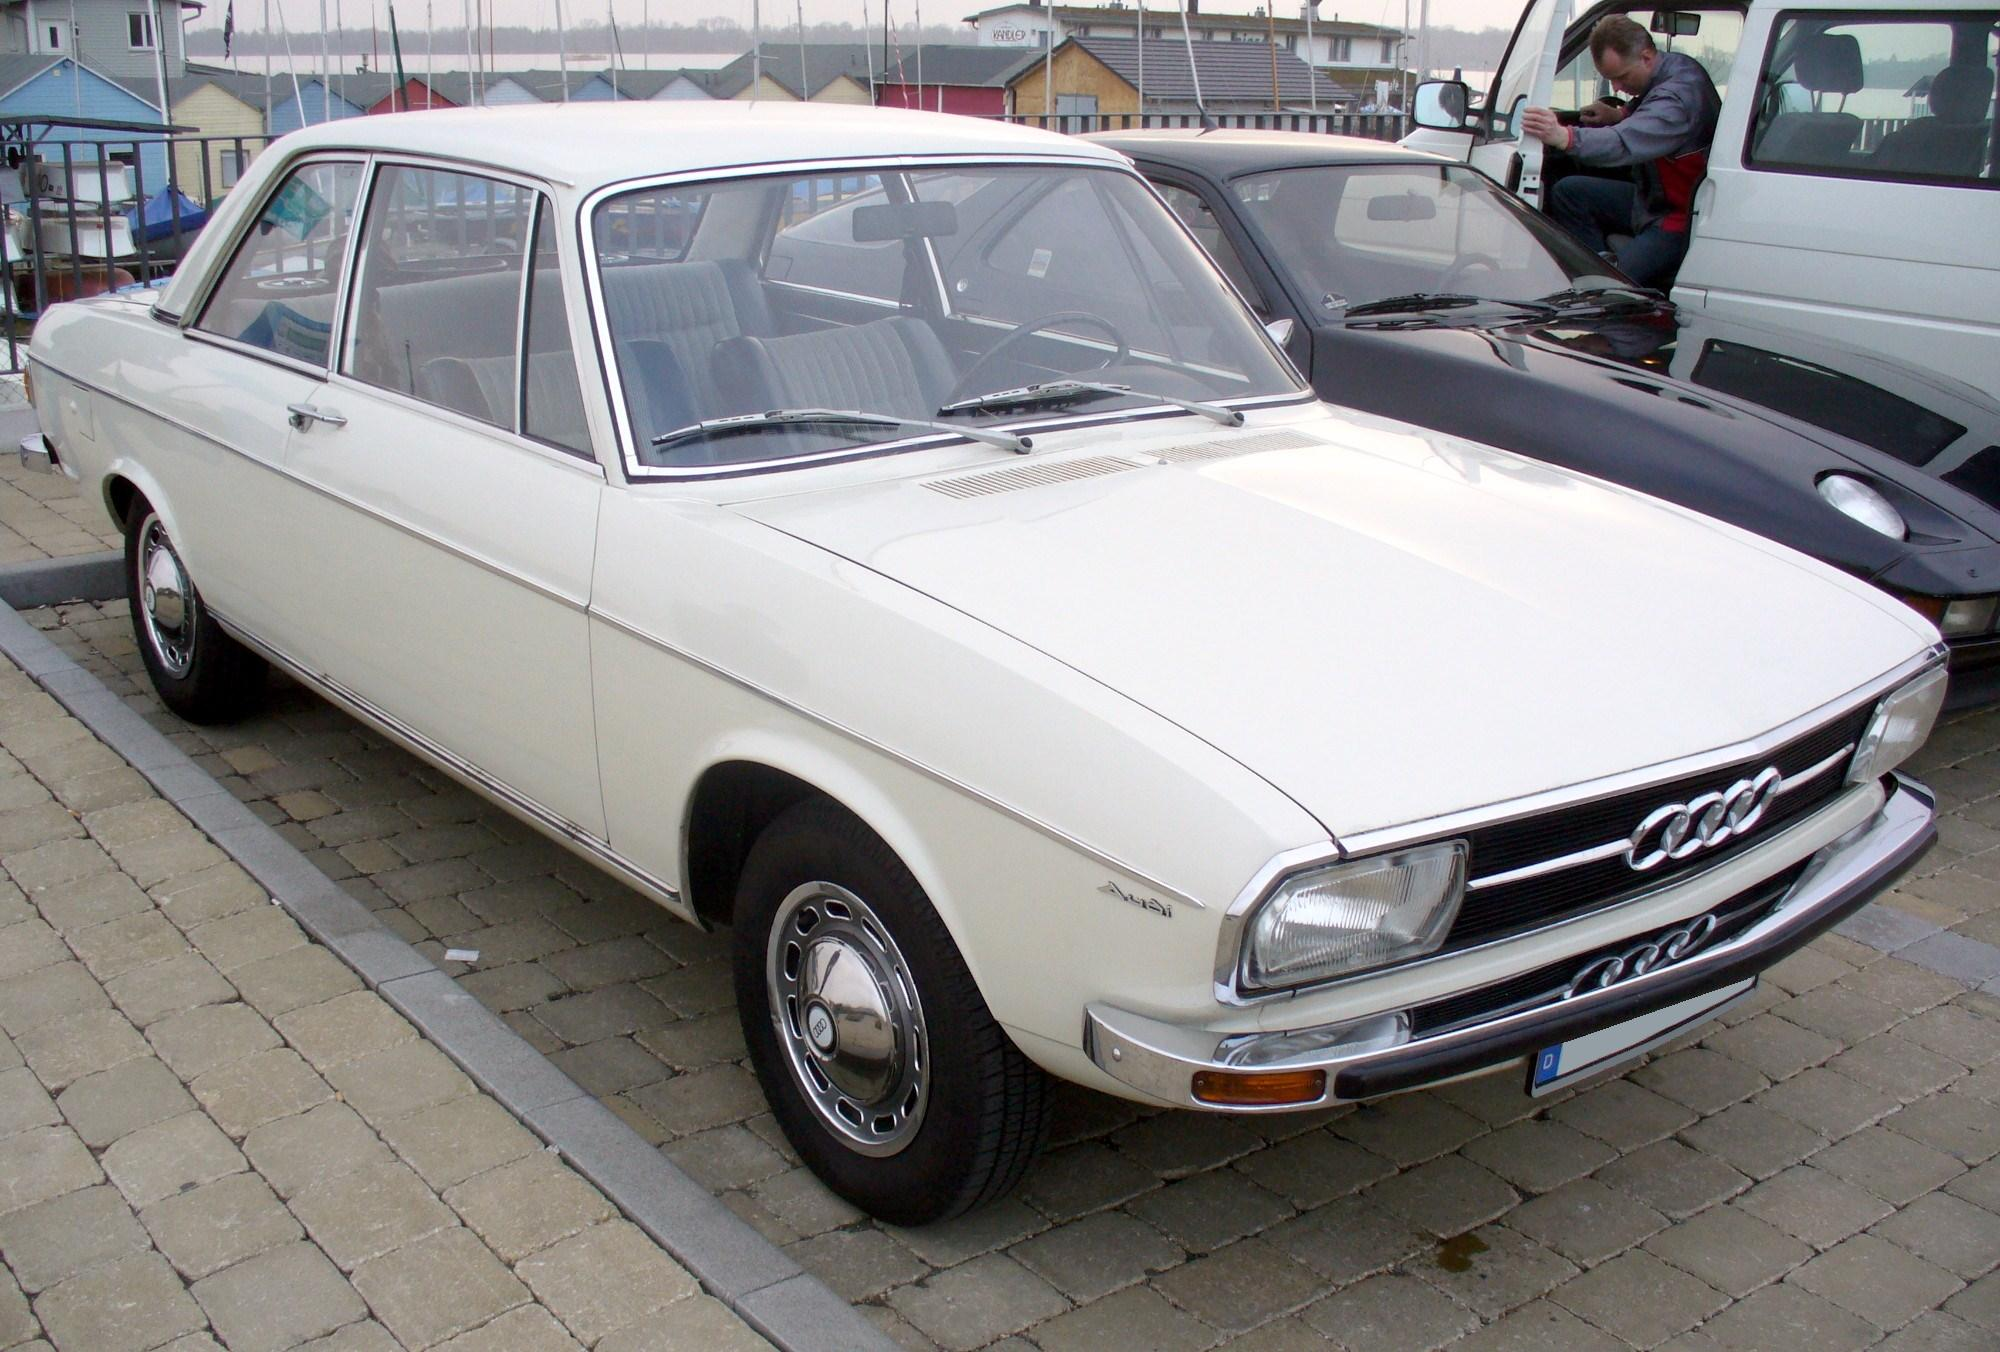 FileAudi LSJPG Wikimedia Commons - Audi 100 ls for sale